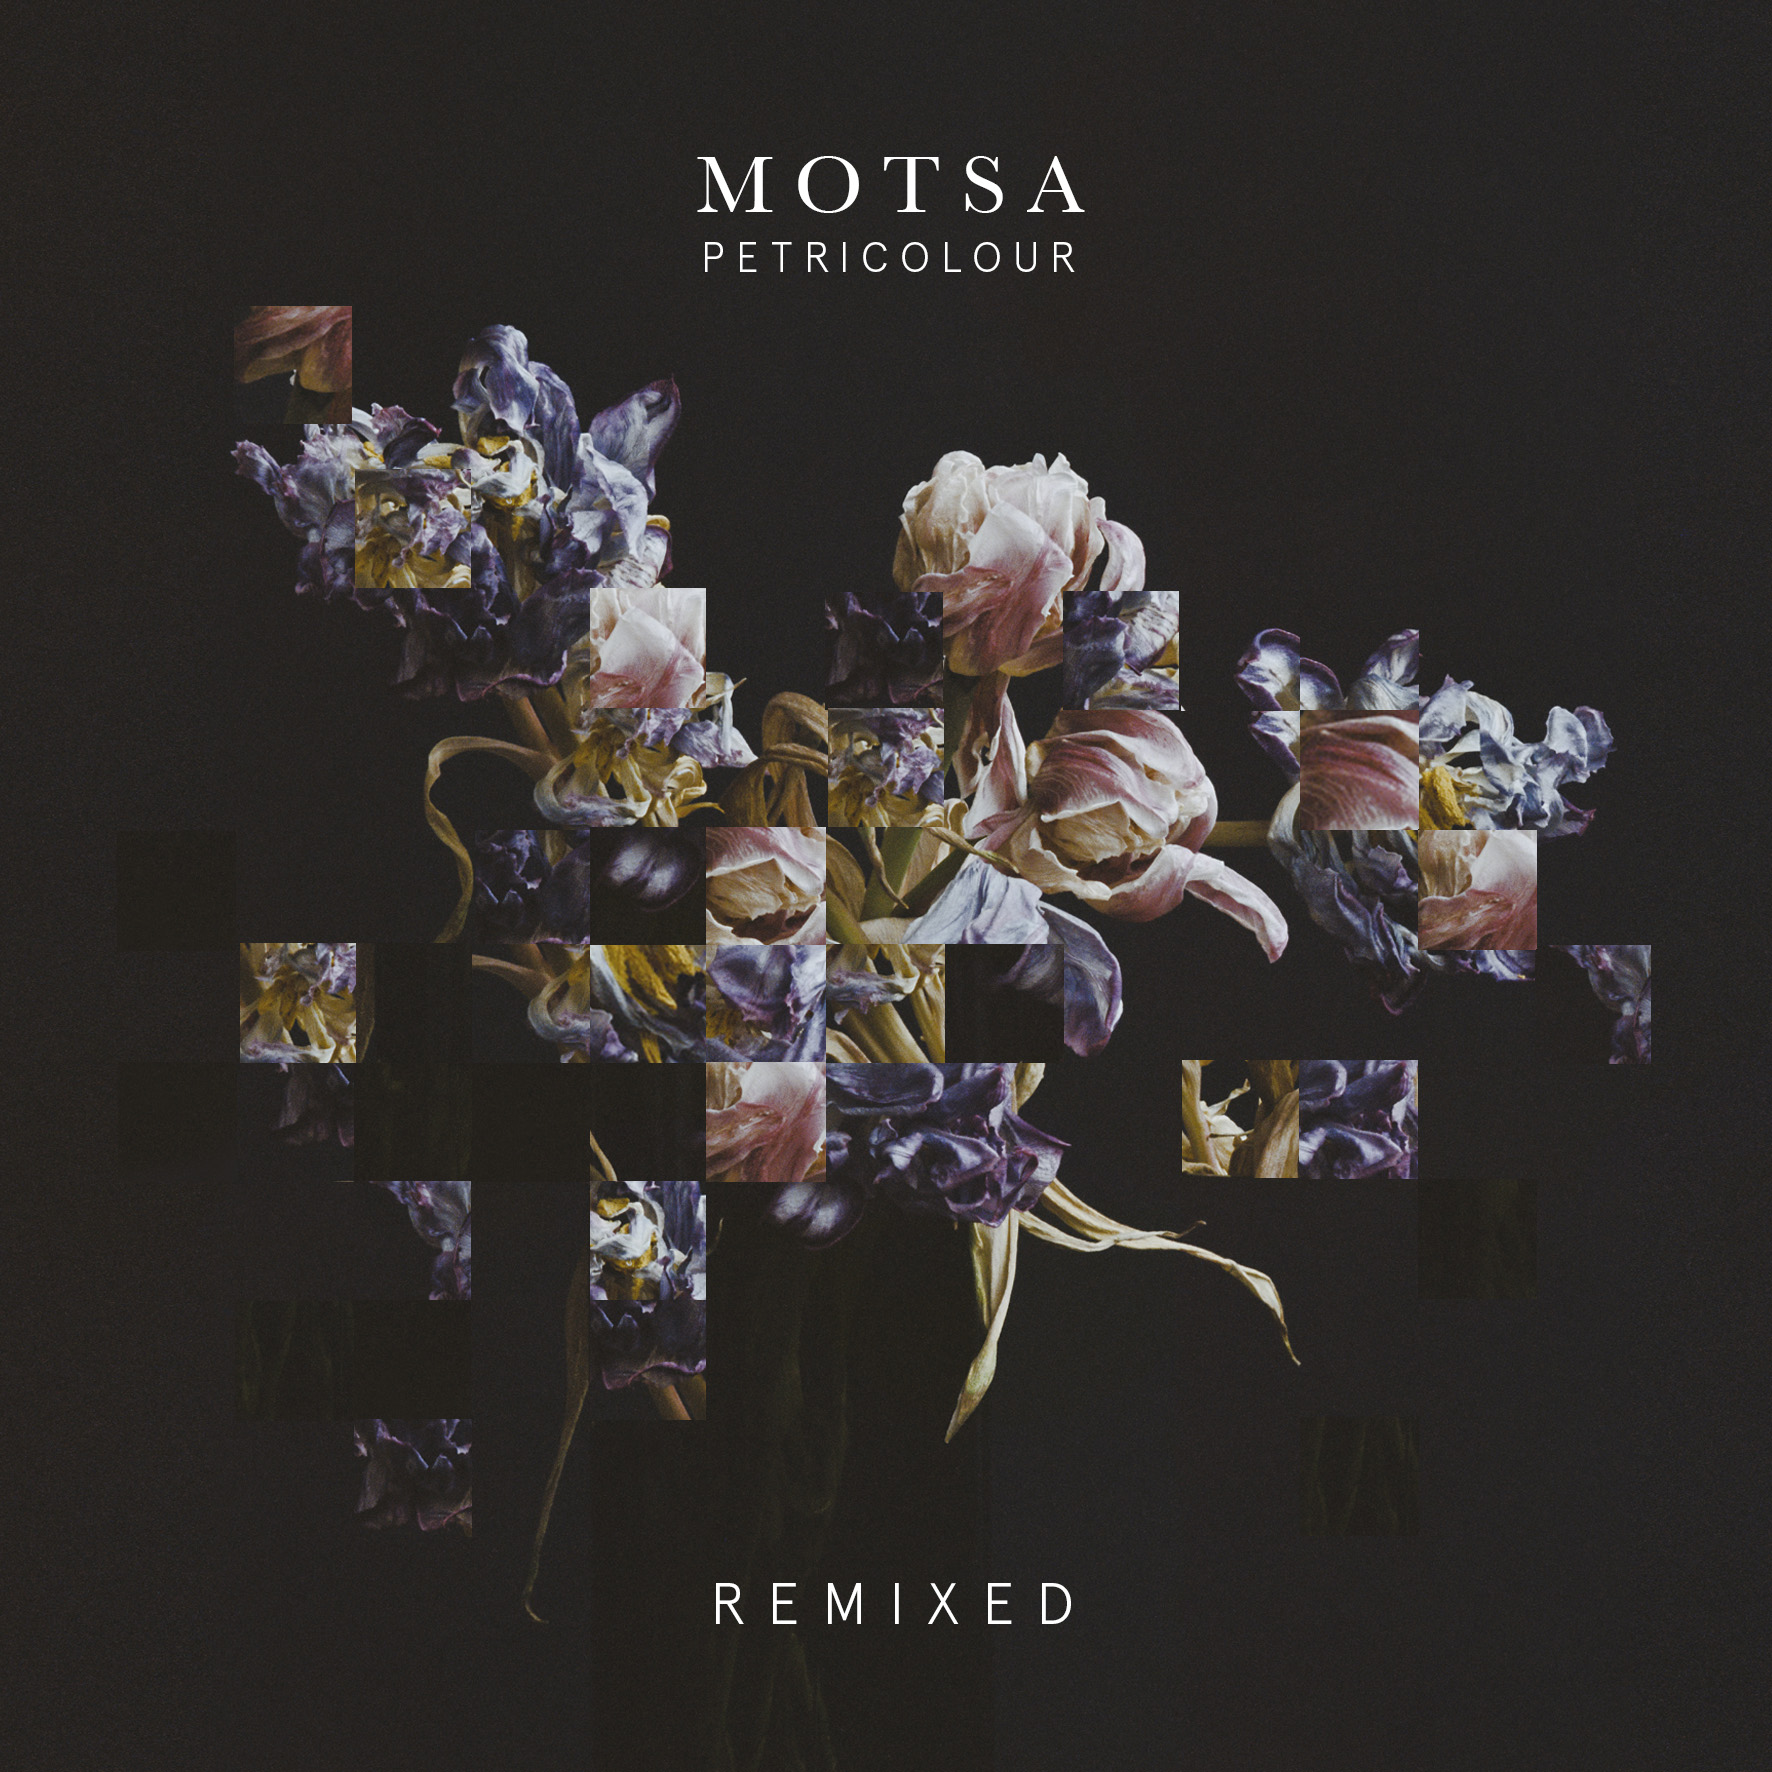 MOTSA - Petricolour Remixed - PTRCLR 002 Artwork